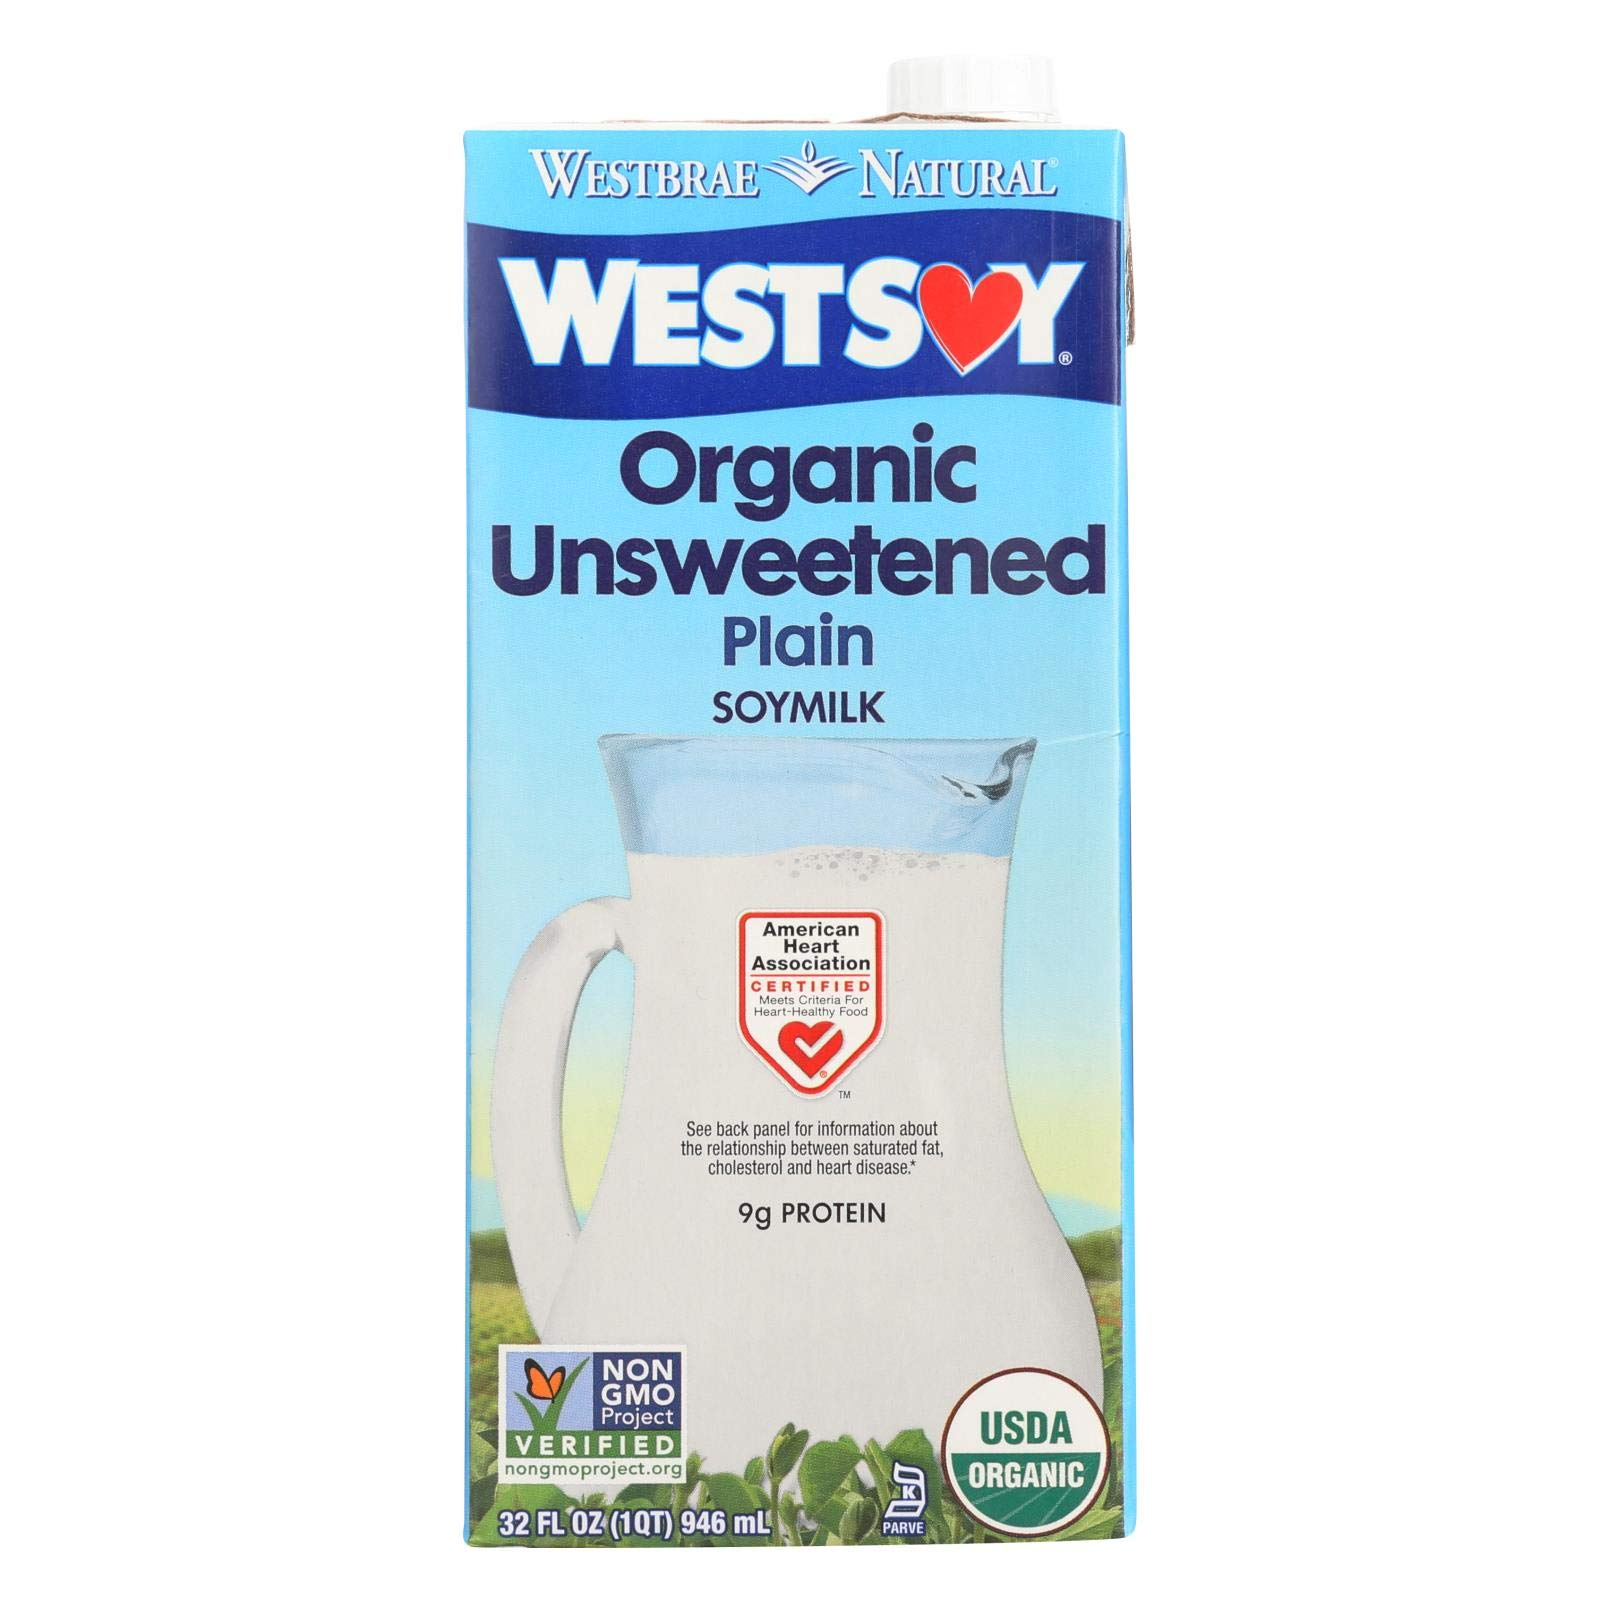 Westsoy Unsweetened Westsoy 32 Oz, Pack of 12 by West Soy